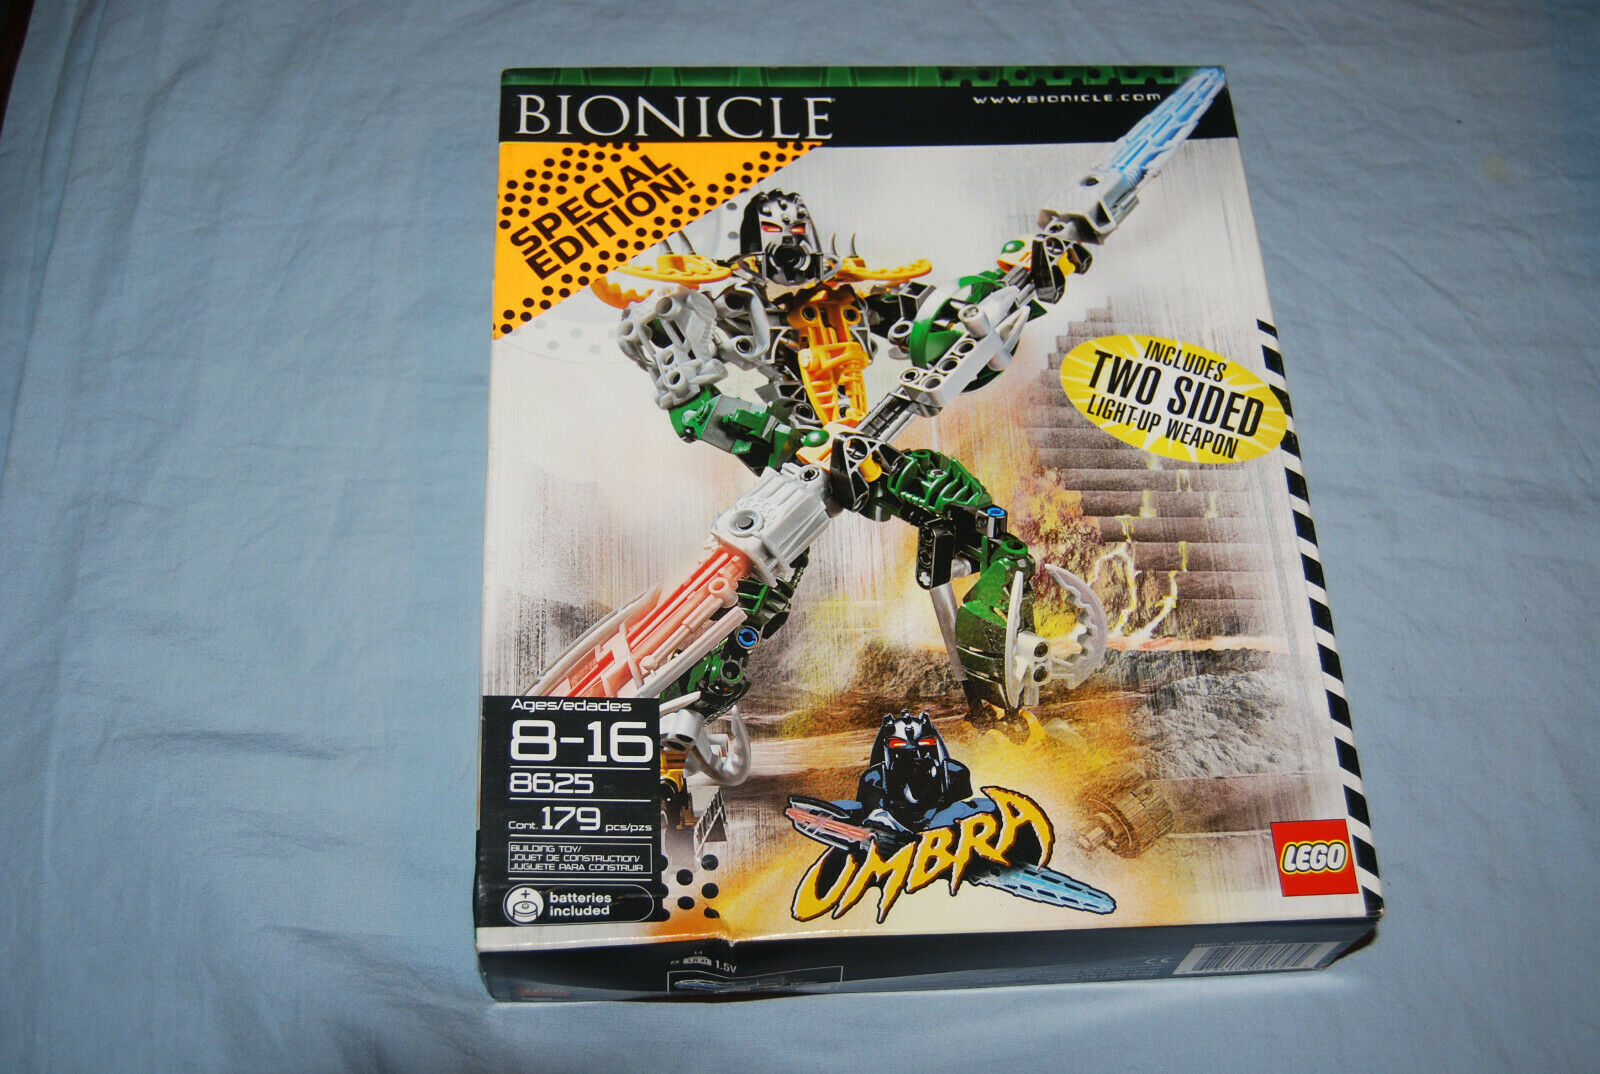 NEW Lego Bionicle Umbra 8625 Factory Sealed Box Damaged Special Edition